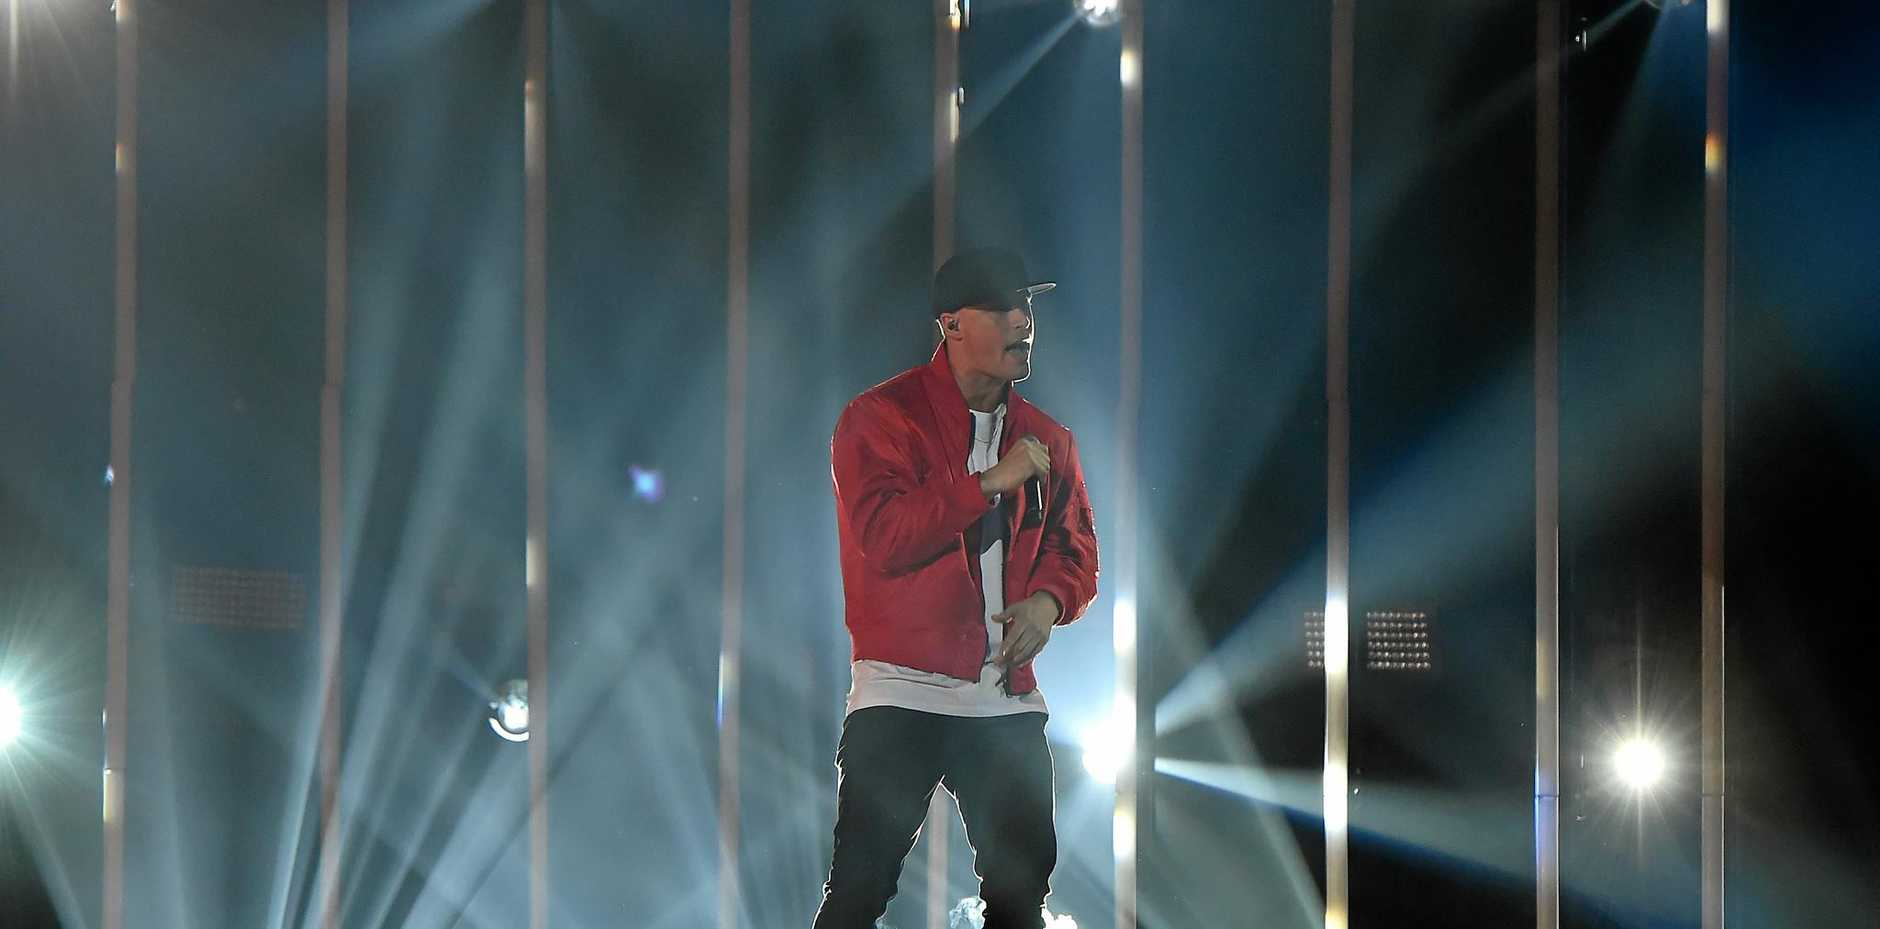 Australian hip hop artist Illy performing at the ARIAs